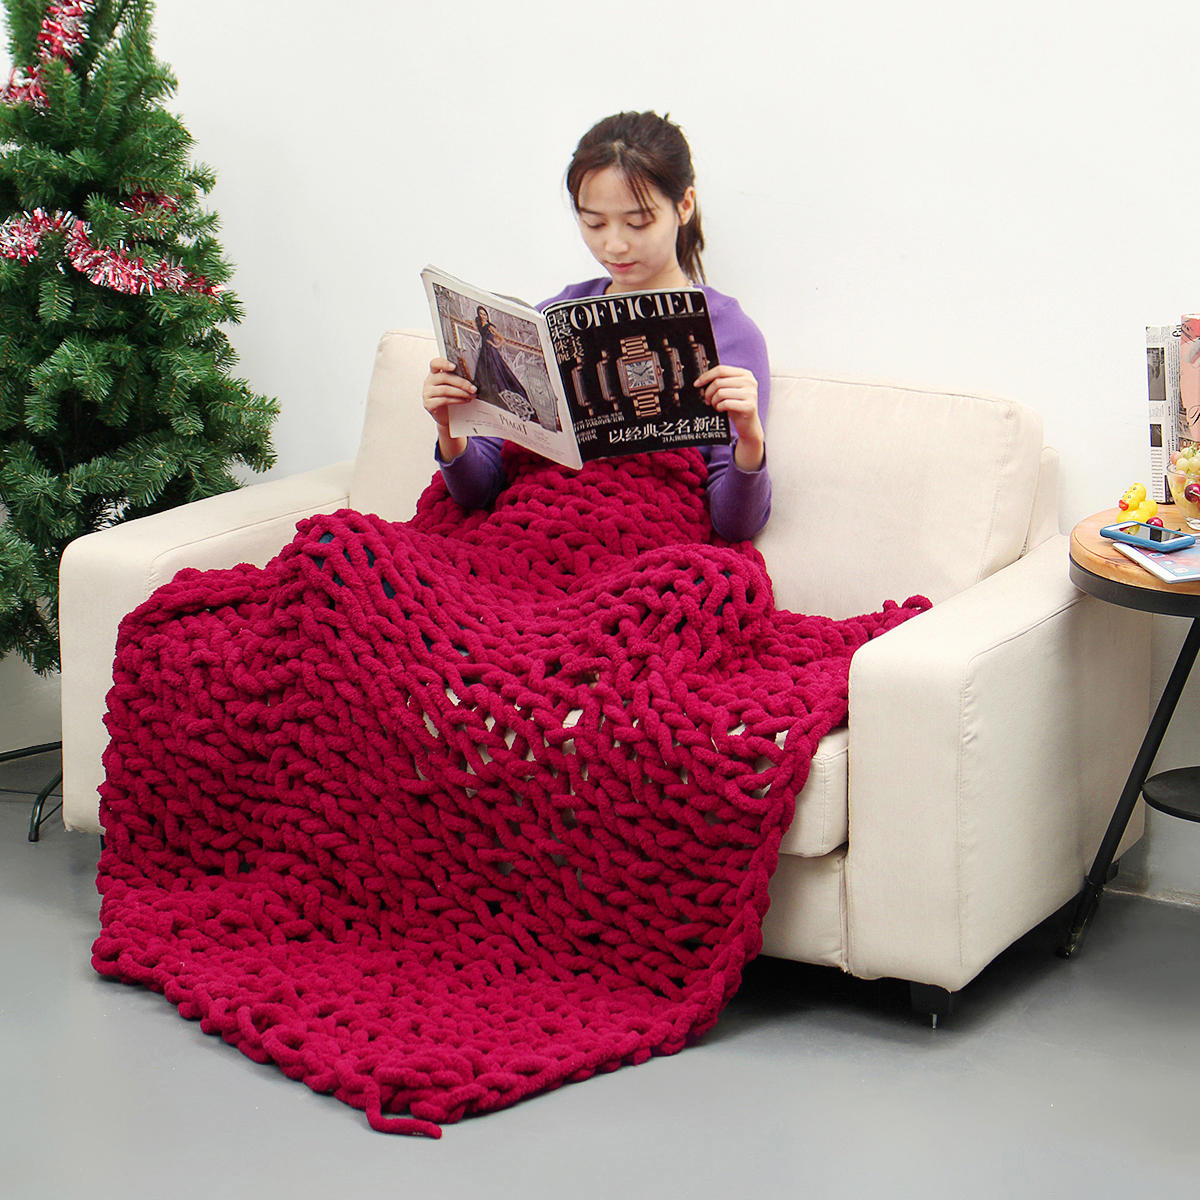 80 x 100cm Handmade Knitted Blanket Cotton Soft Washable Lint free Throw Blankets - 1